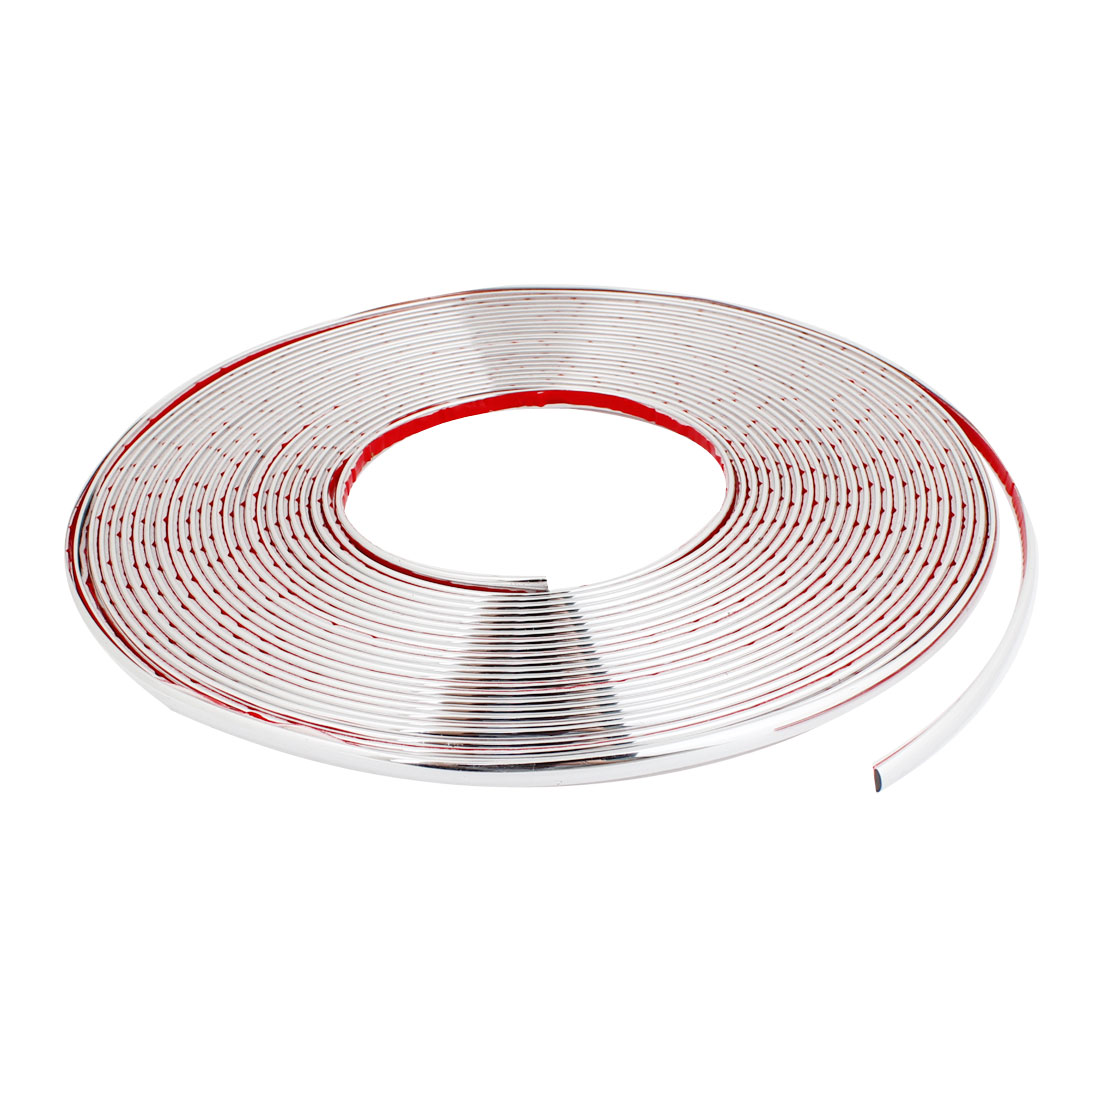 Car Silver Tone 7mm Width 15m Long Flexible Soft Plastic Bumper Decorative Strip